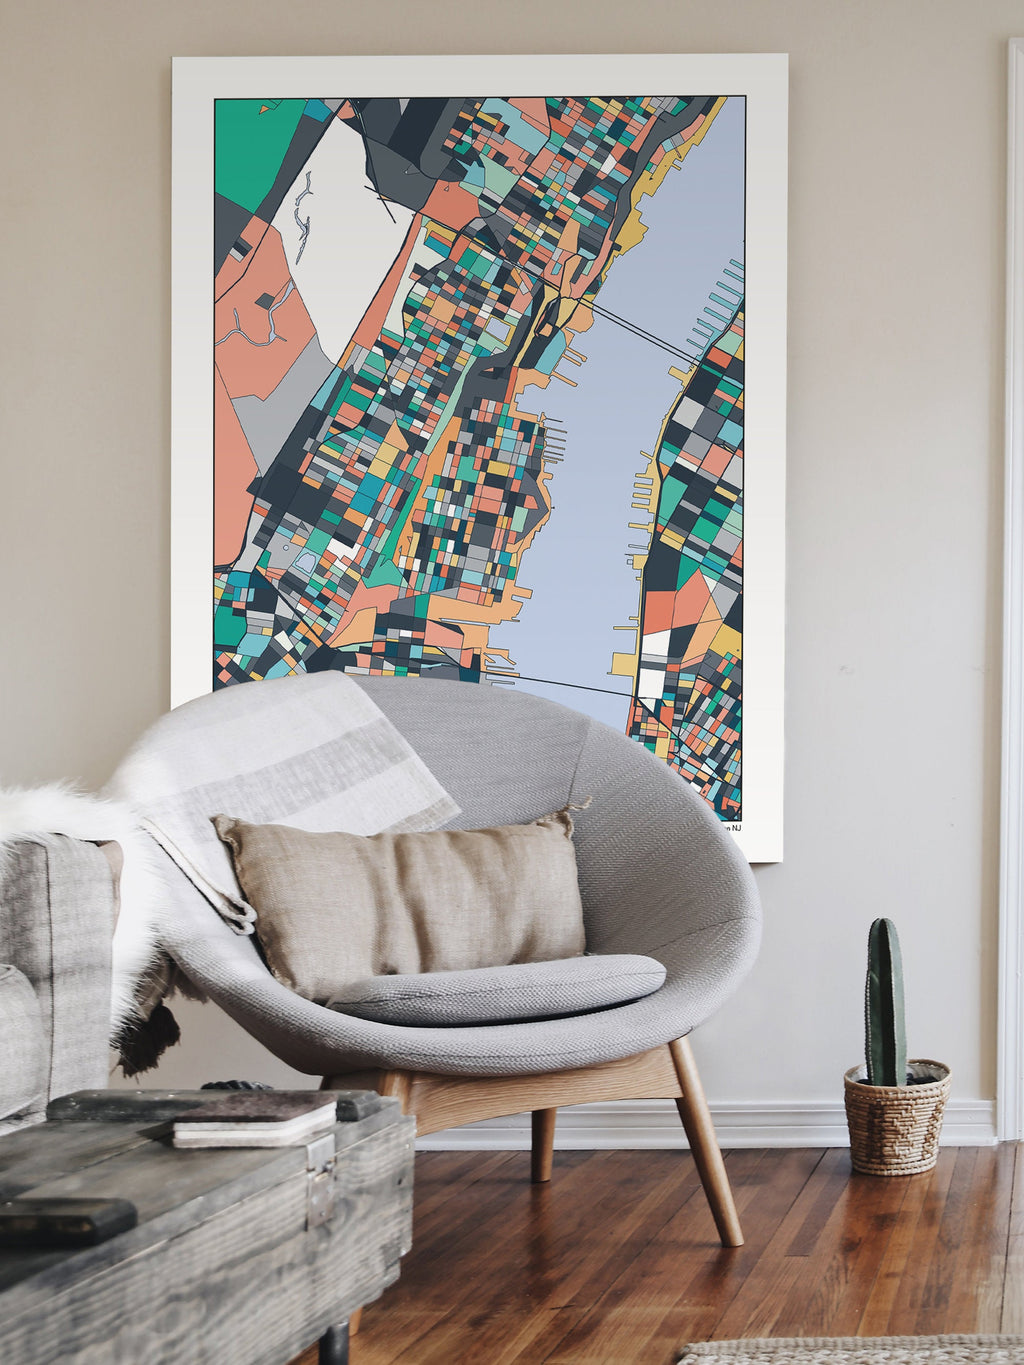 Hoboken New Jersey Map Art Print Poster Wall Art Home Decor Hoboken NJ Abstract City Map Artwork Hudson River Hometown Wedding Gift